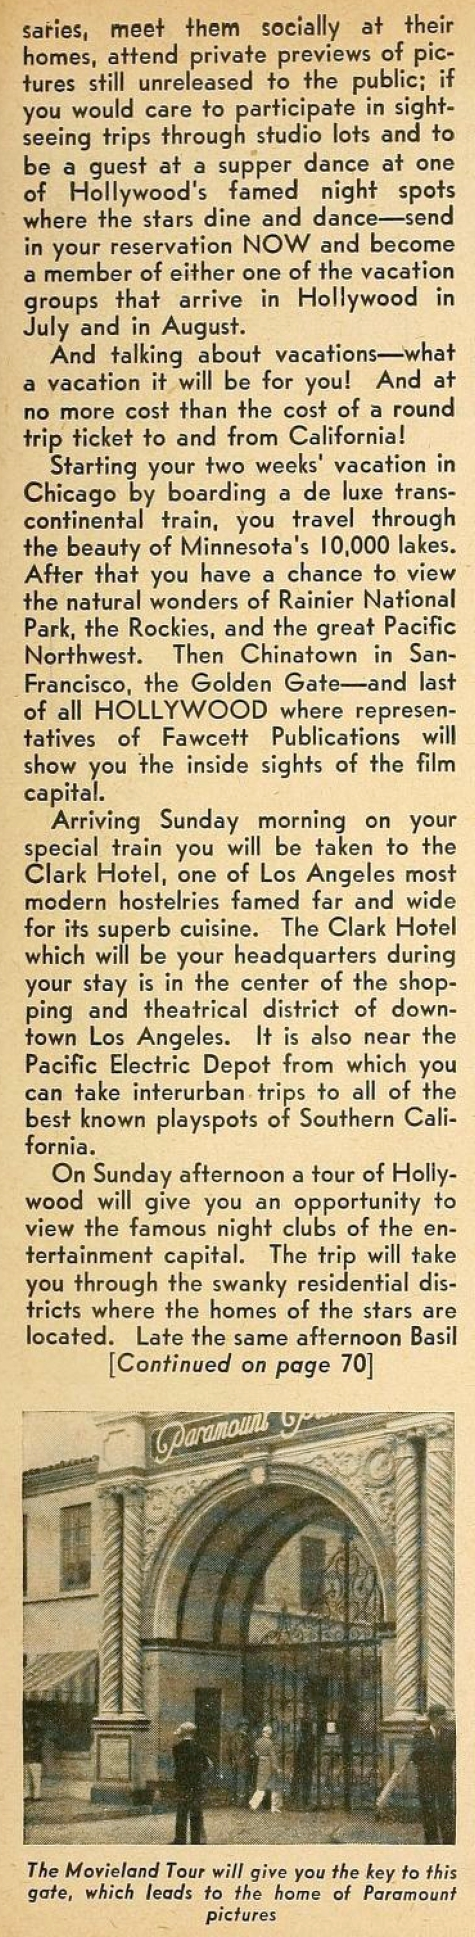 hollywood june 1937 tour 01a